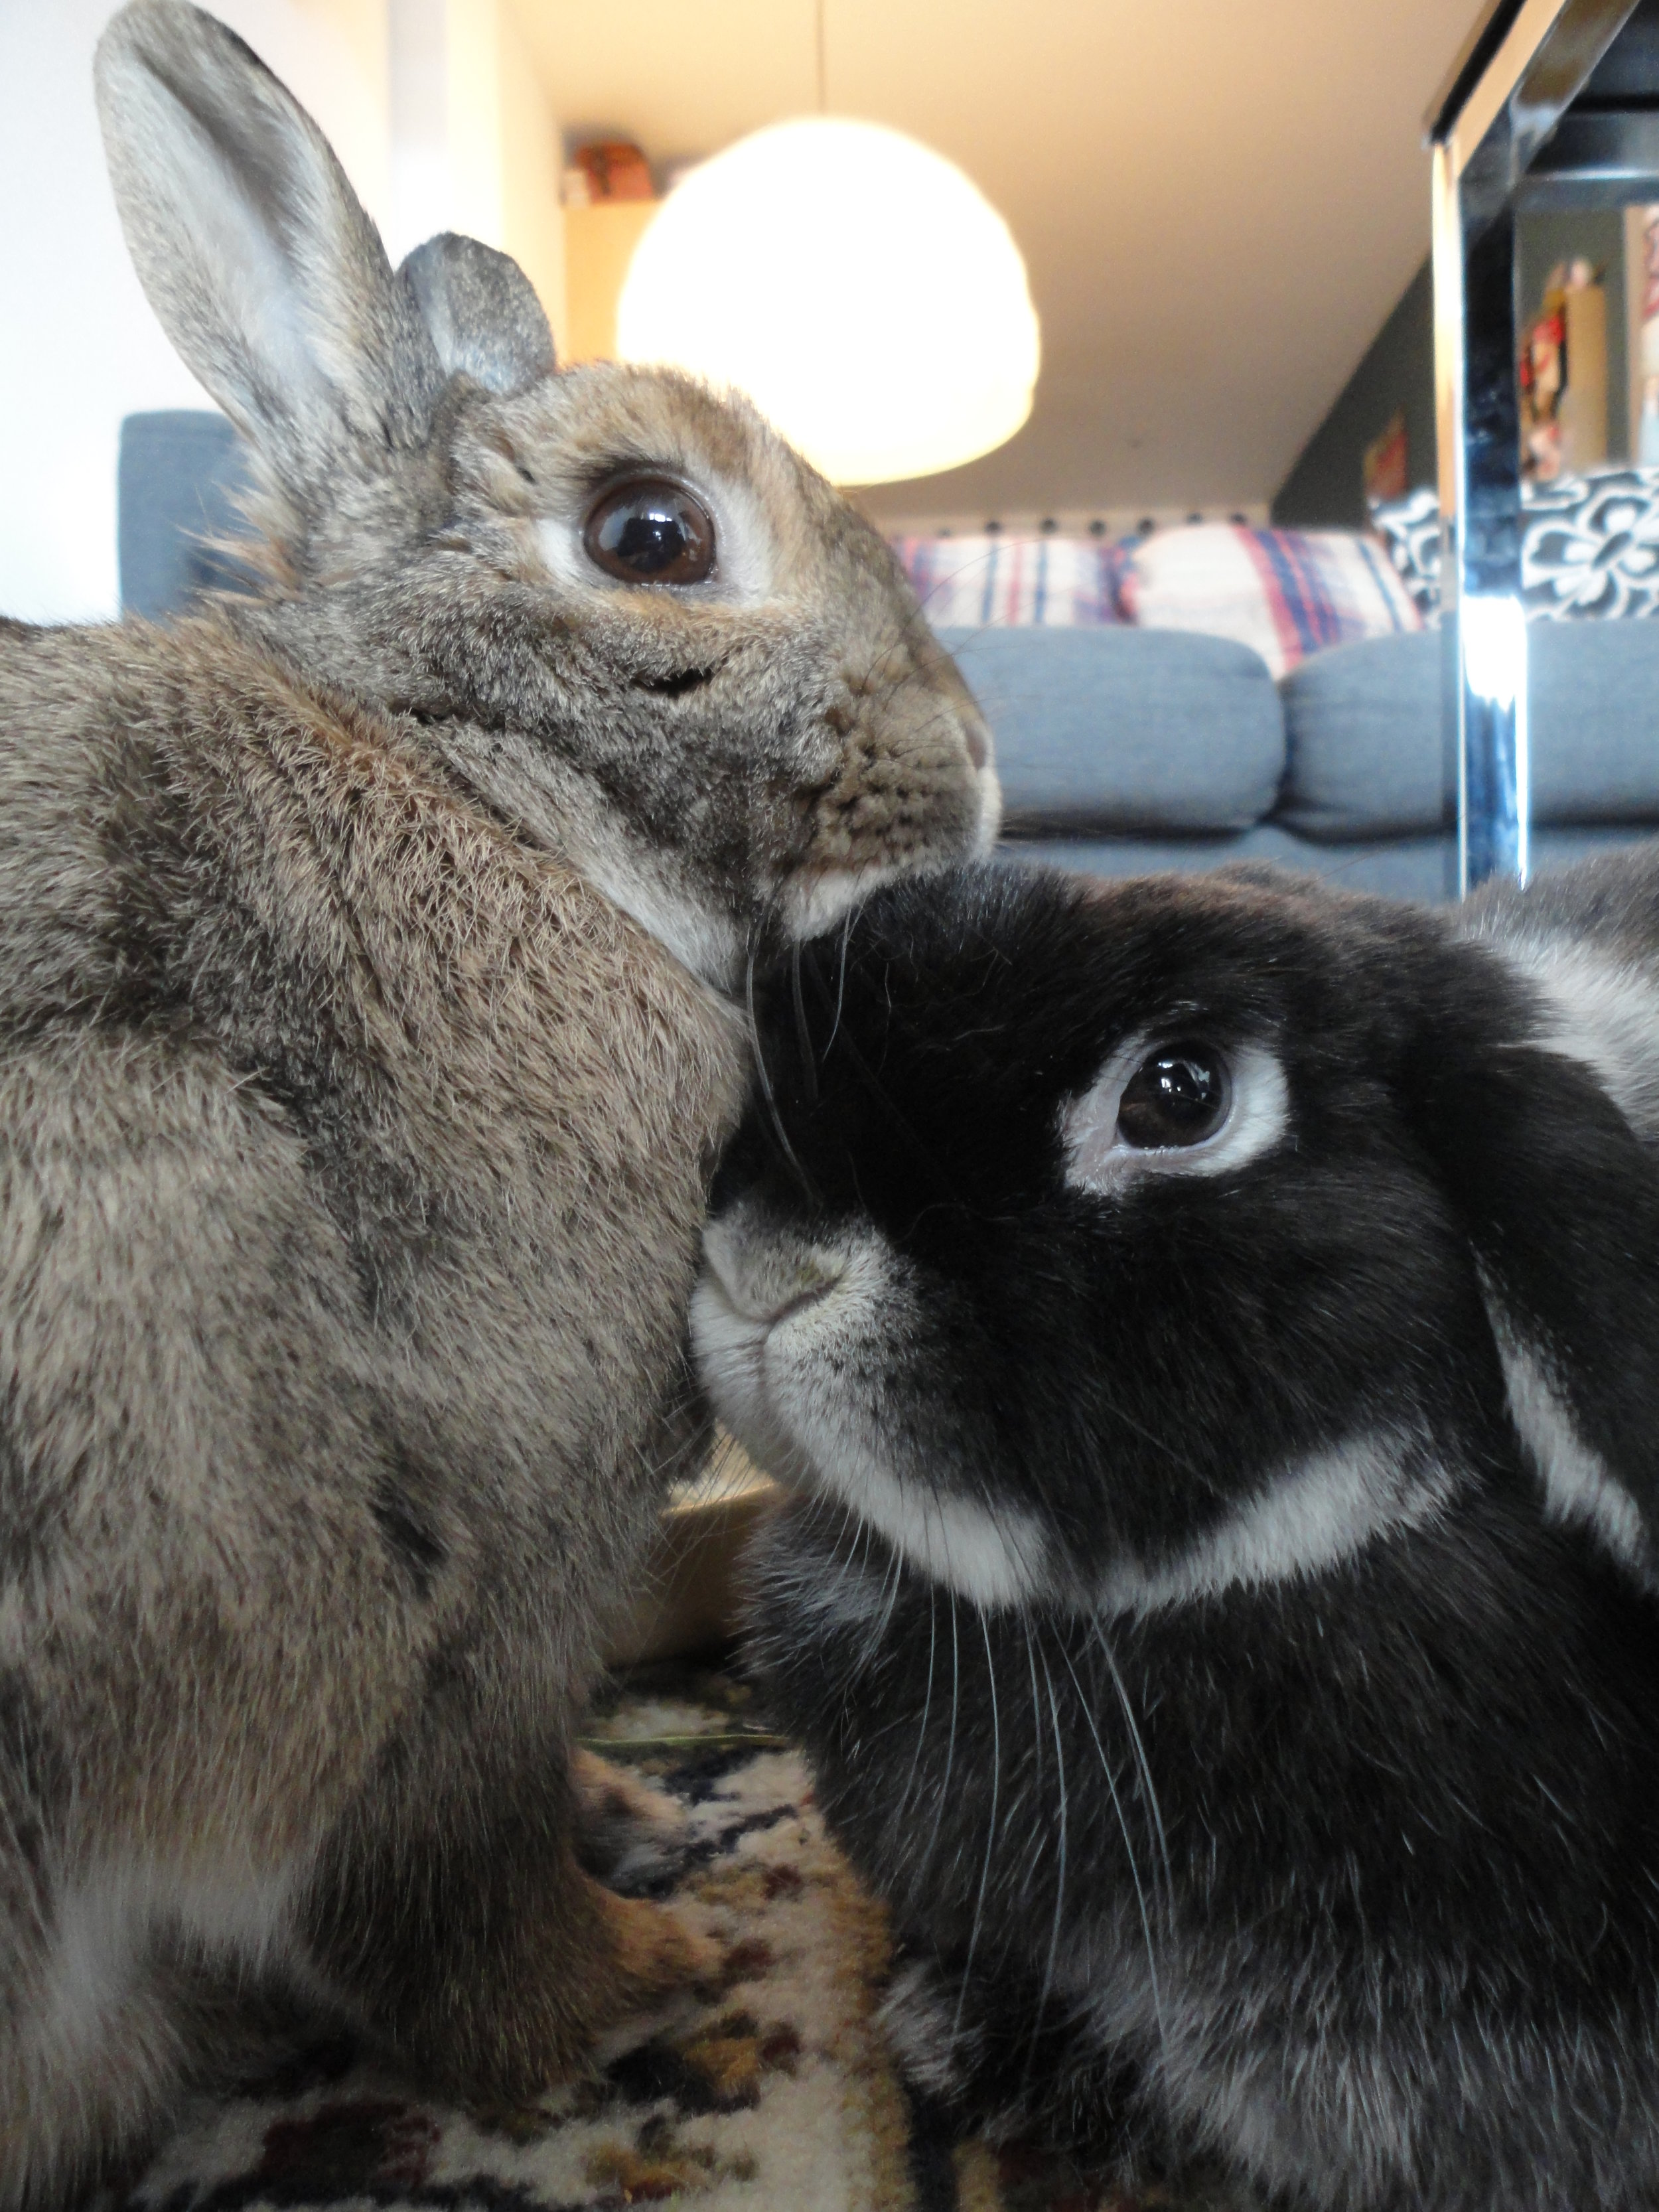 Bunnies' Subtle Display of Affection